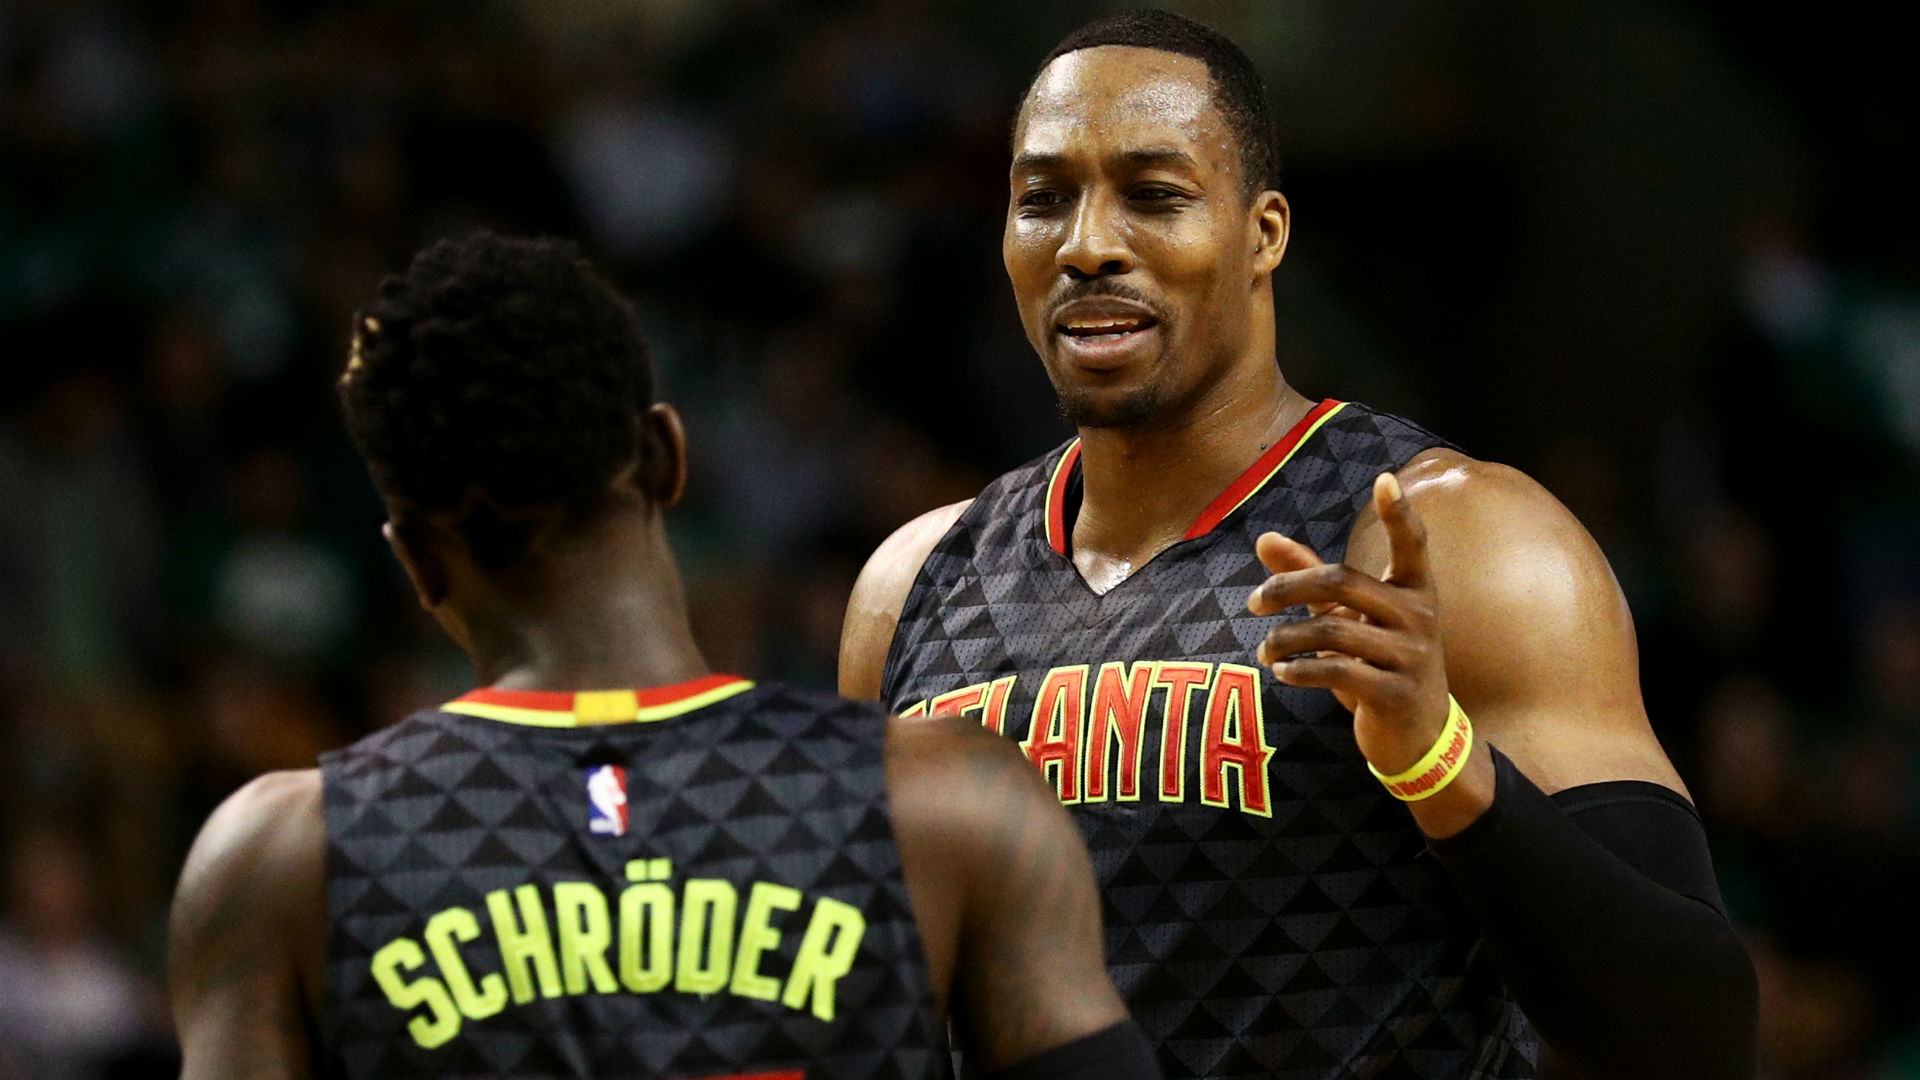 Dennis Schroder has heated exchange with Dwight Howard, coach Mike Budenholzer